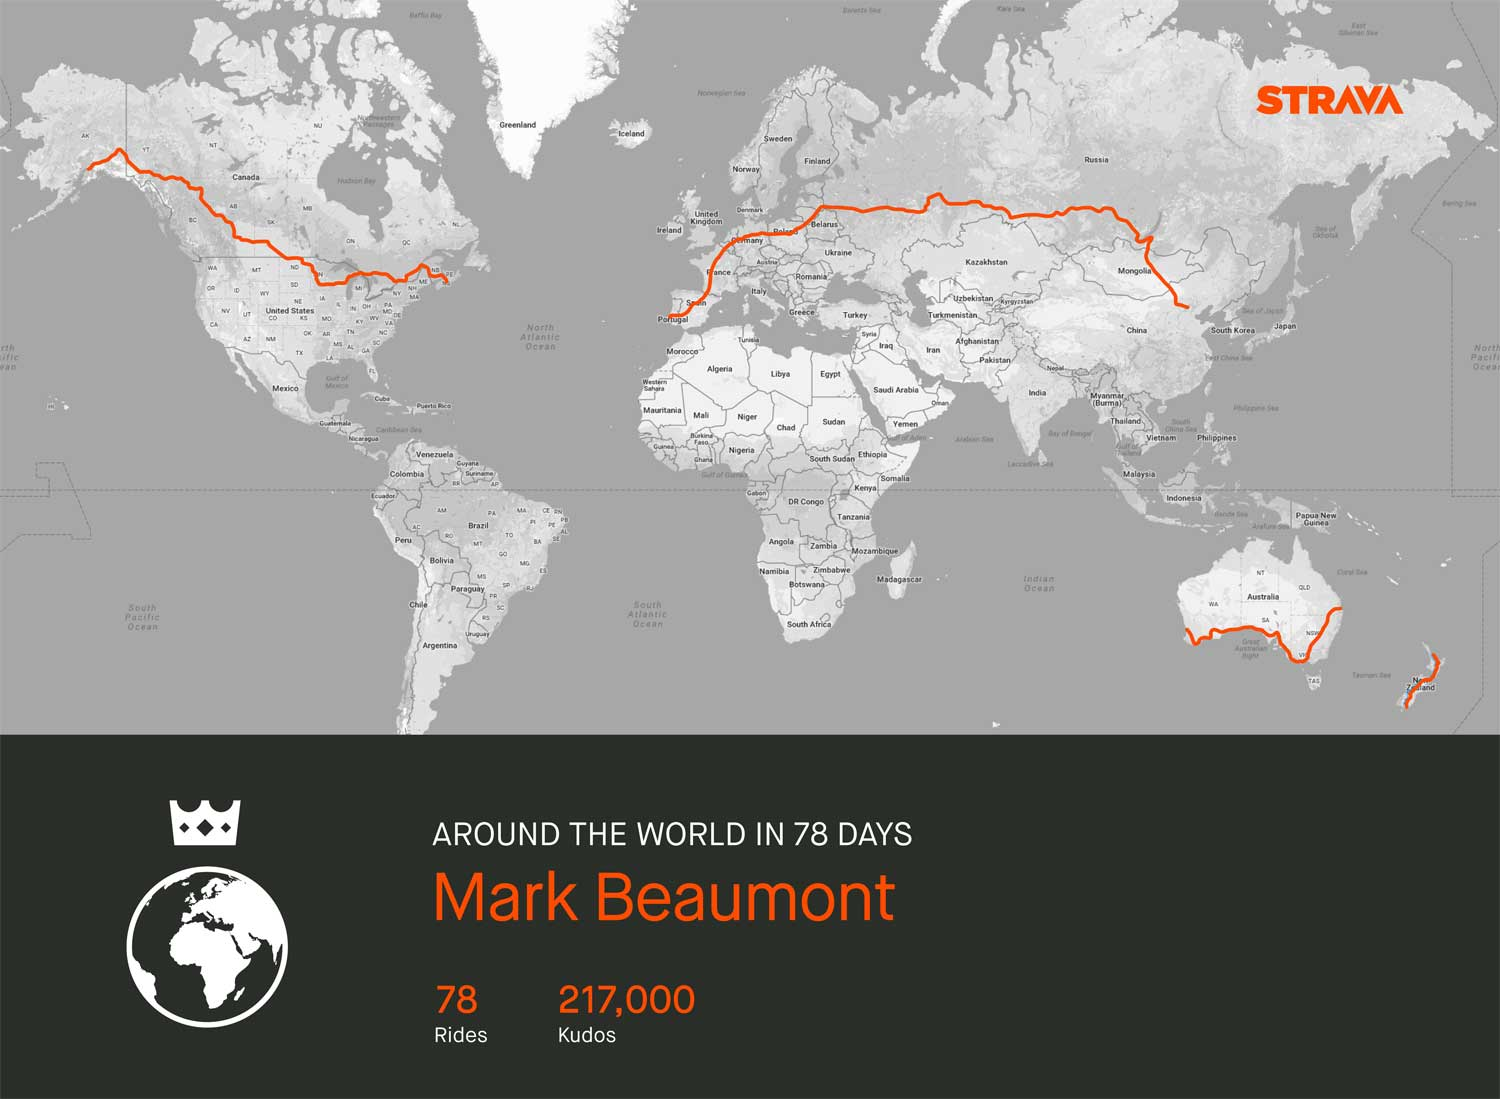 British cyclist pedals around the world in 78 days, smashes record